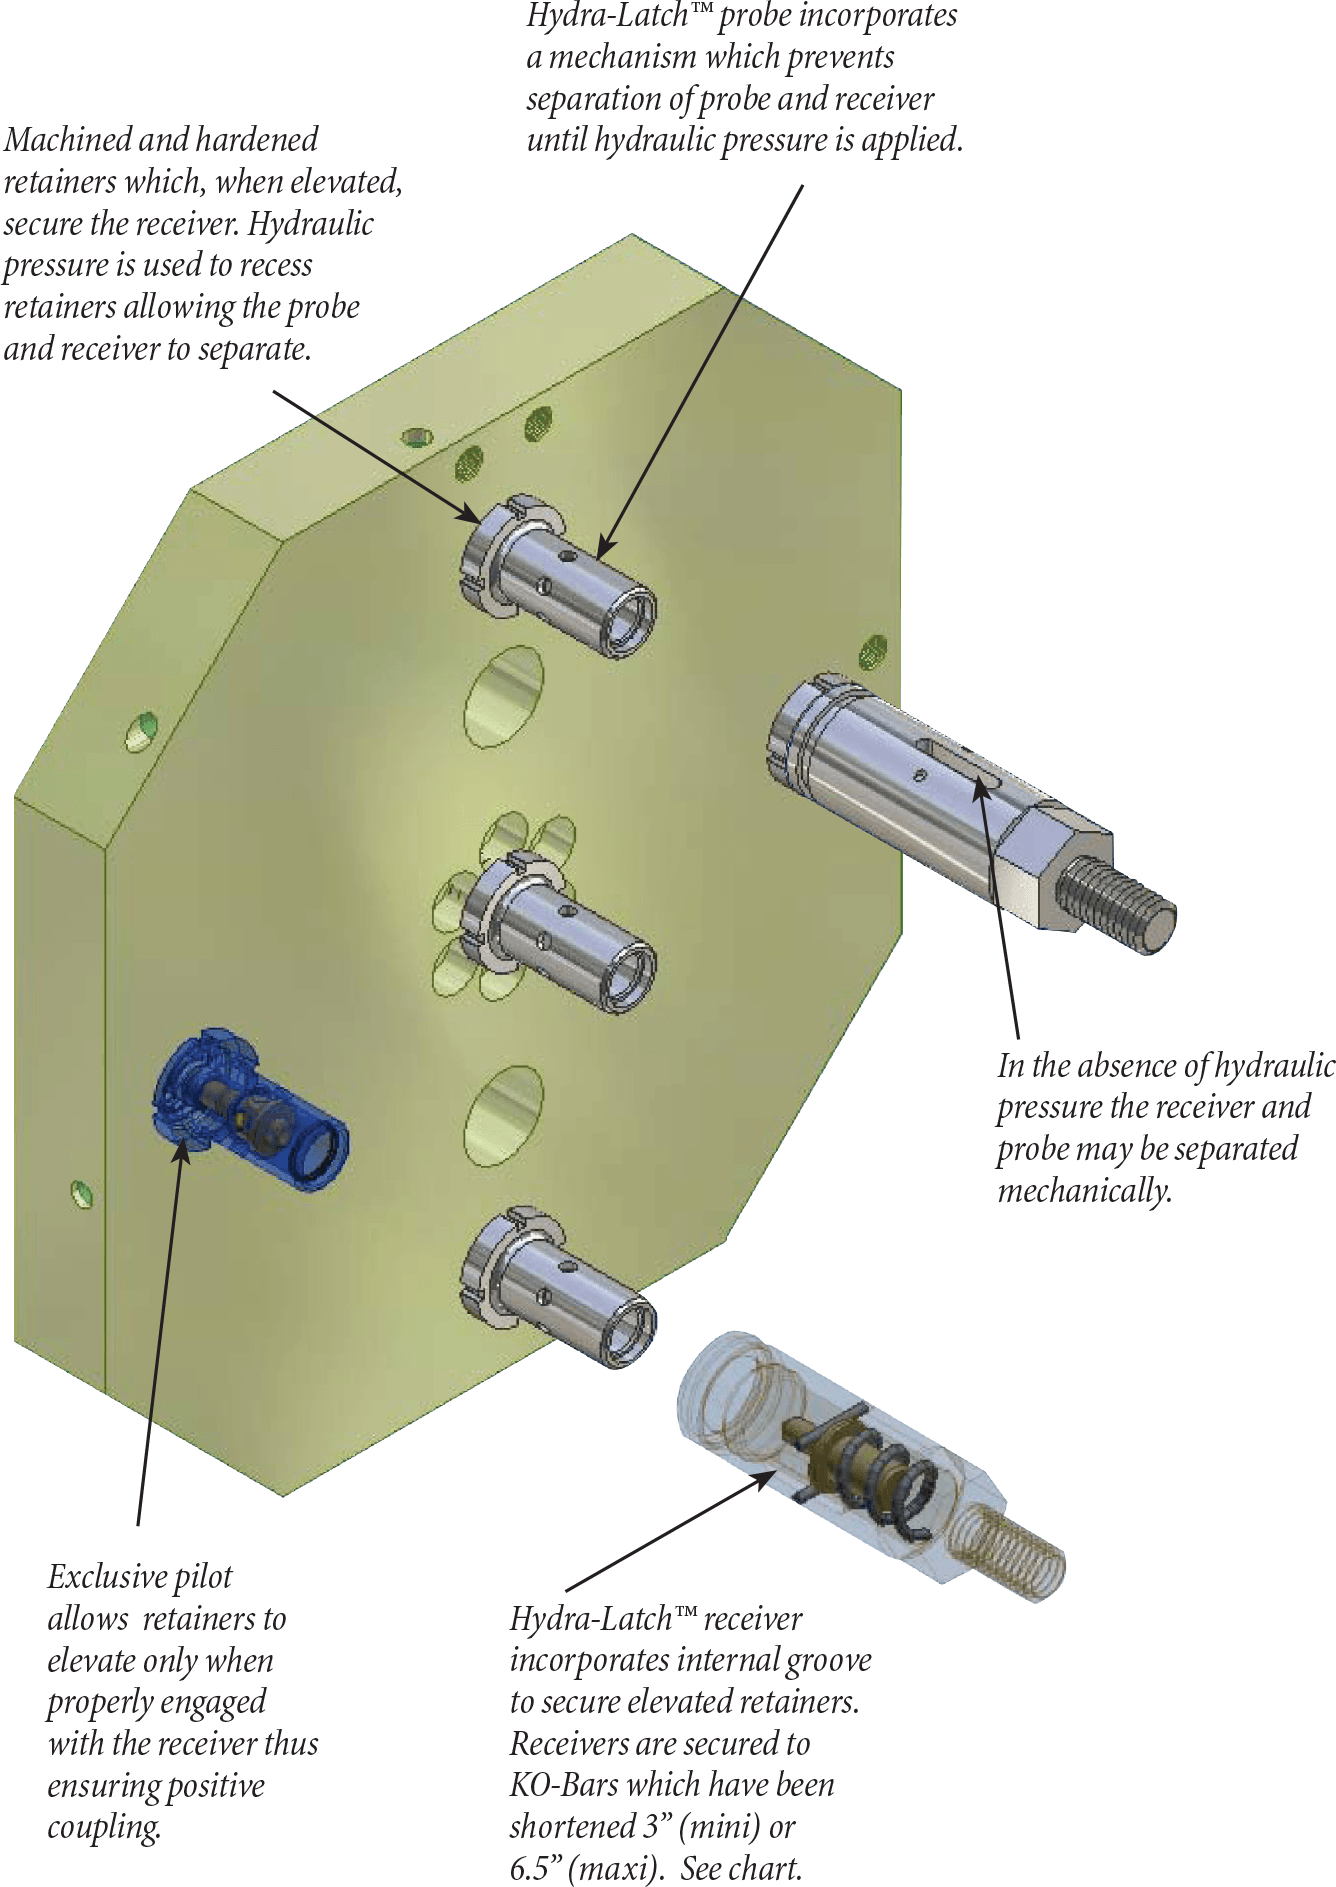 hydra-latch features